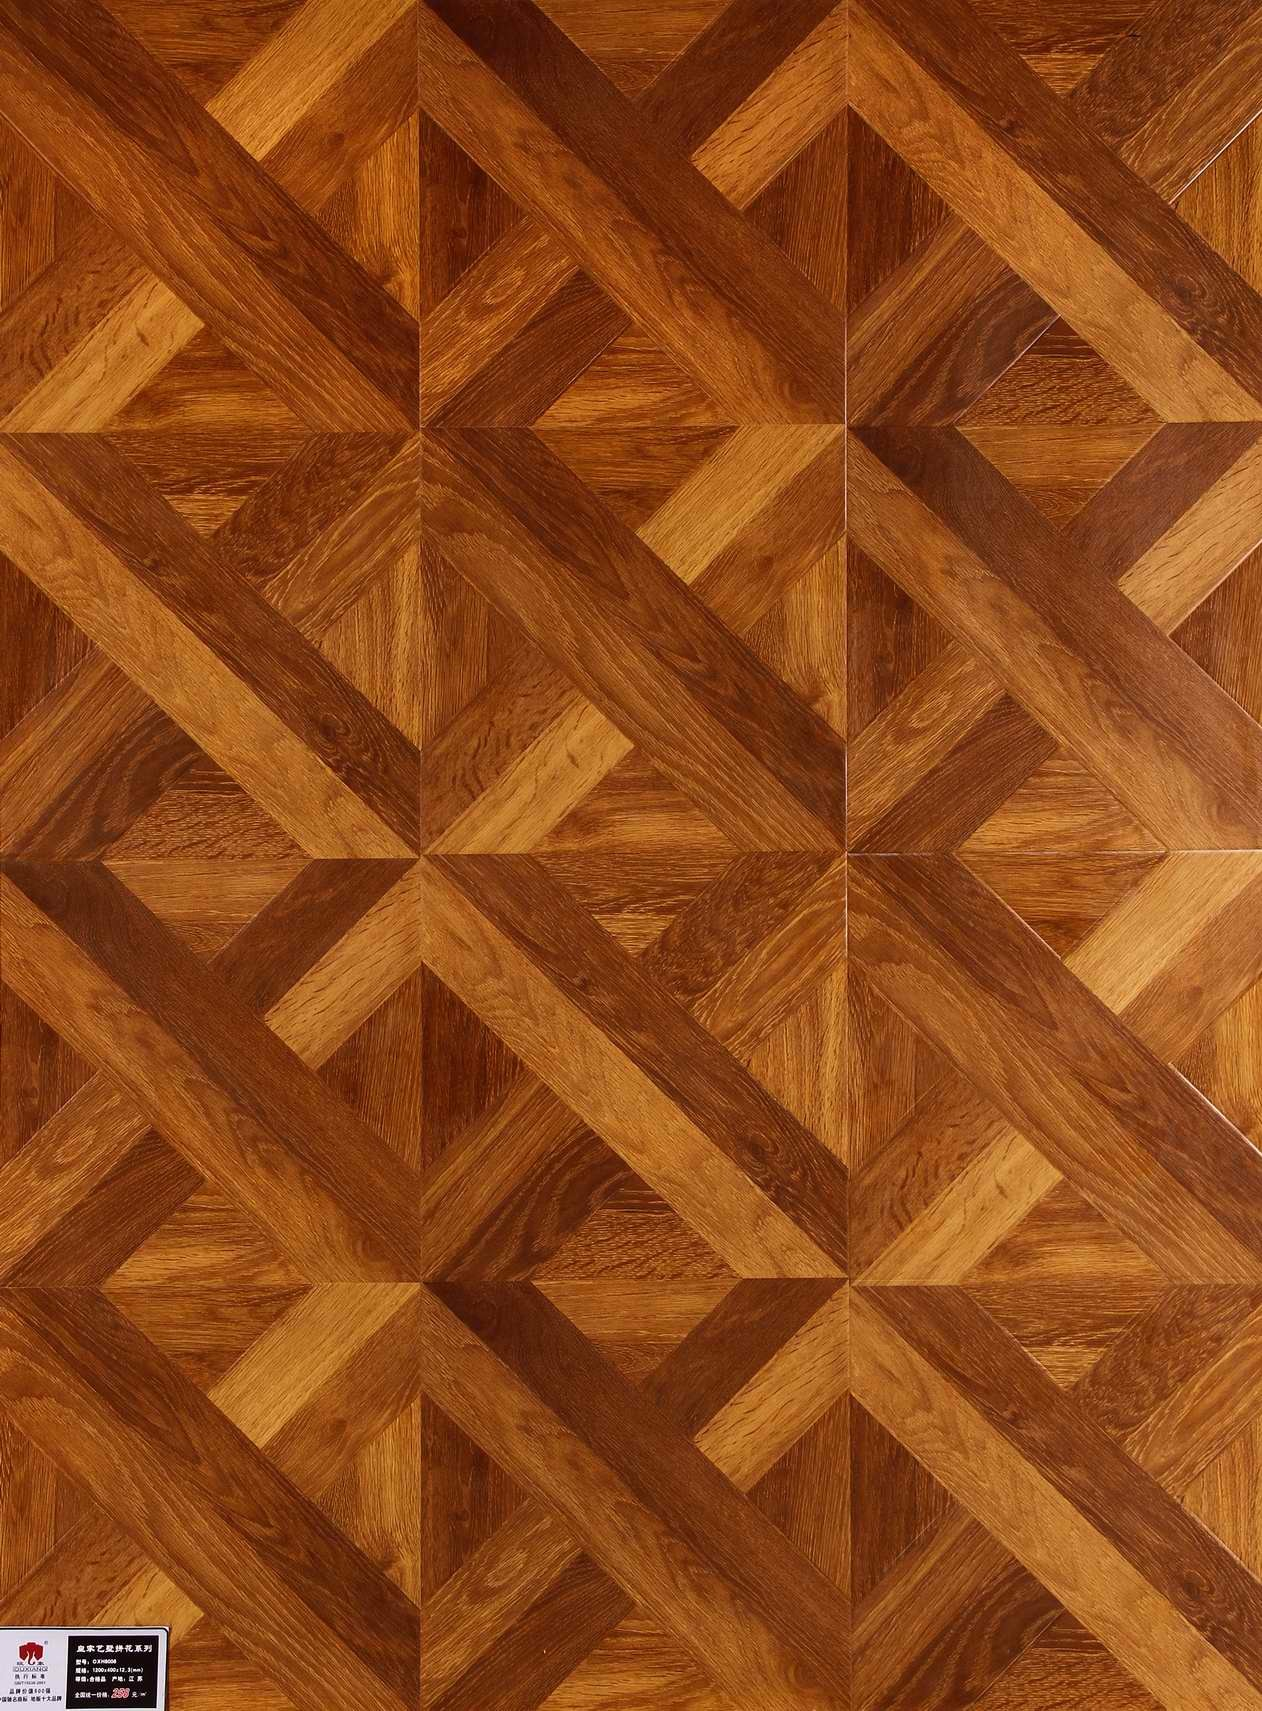 Photos Of Parquet Floors Home Design Architecture